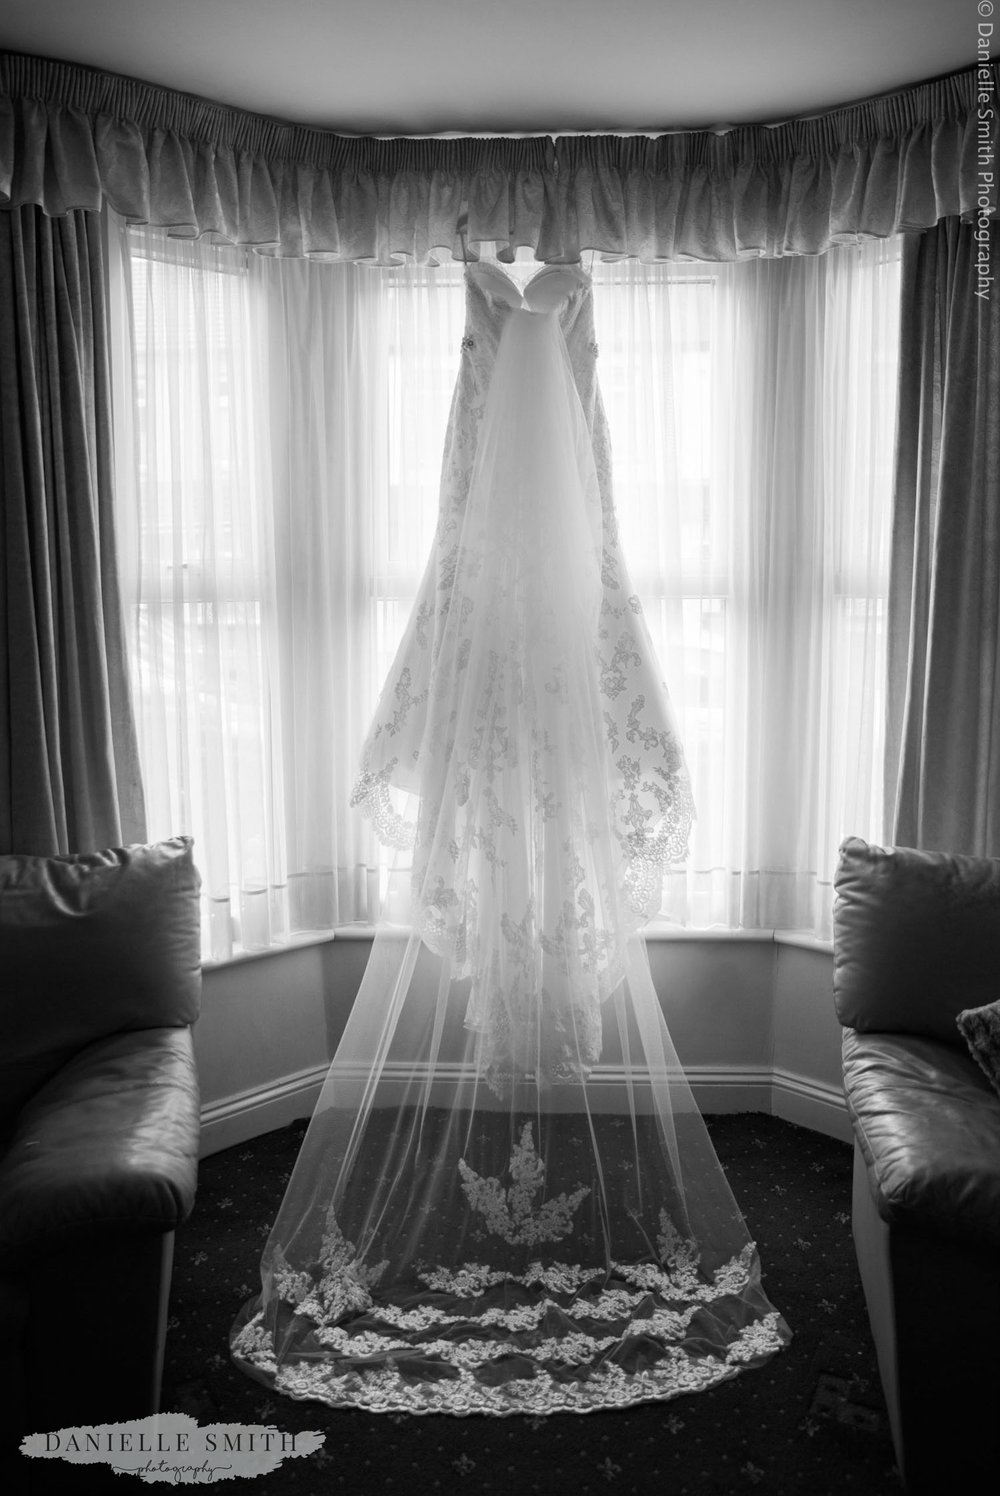 wedding dress and veil hanging in window